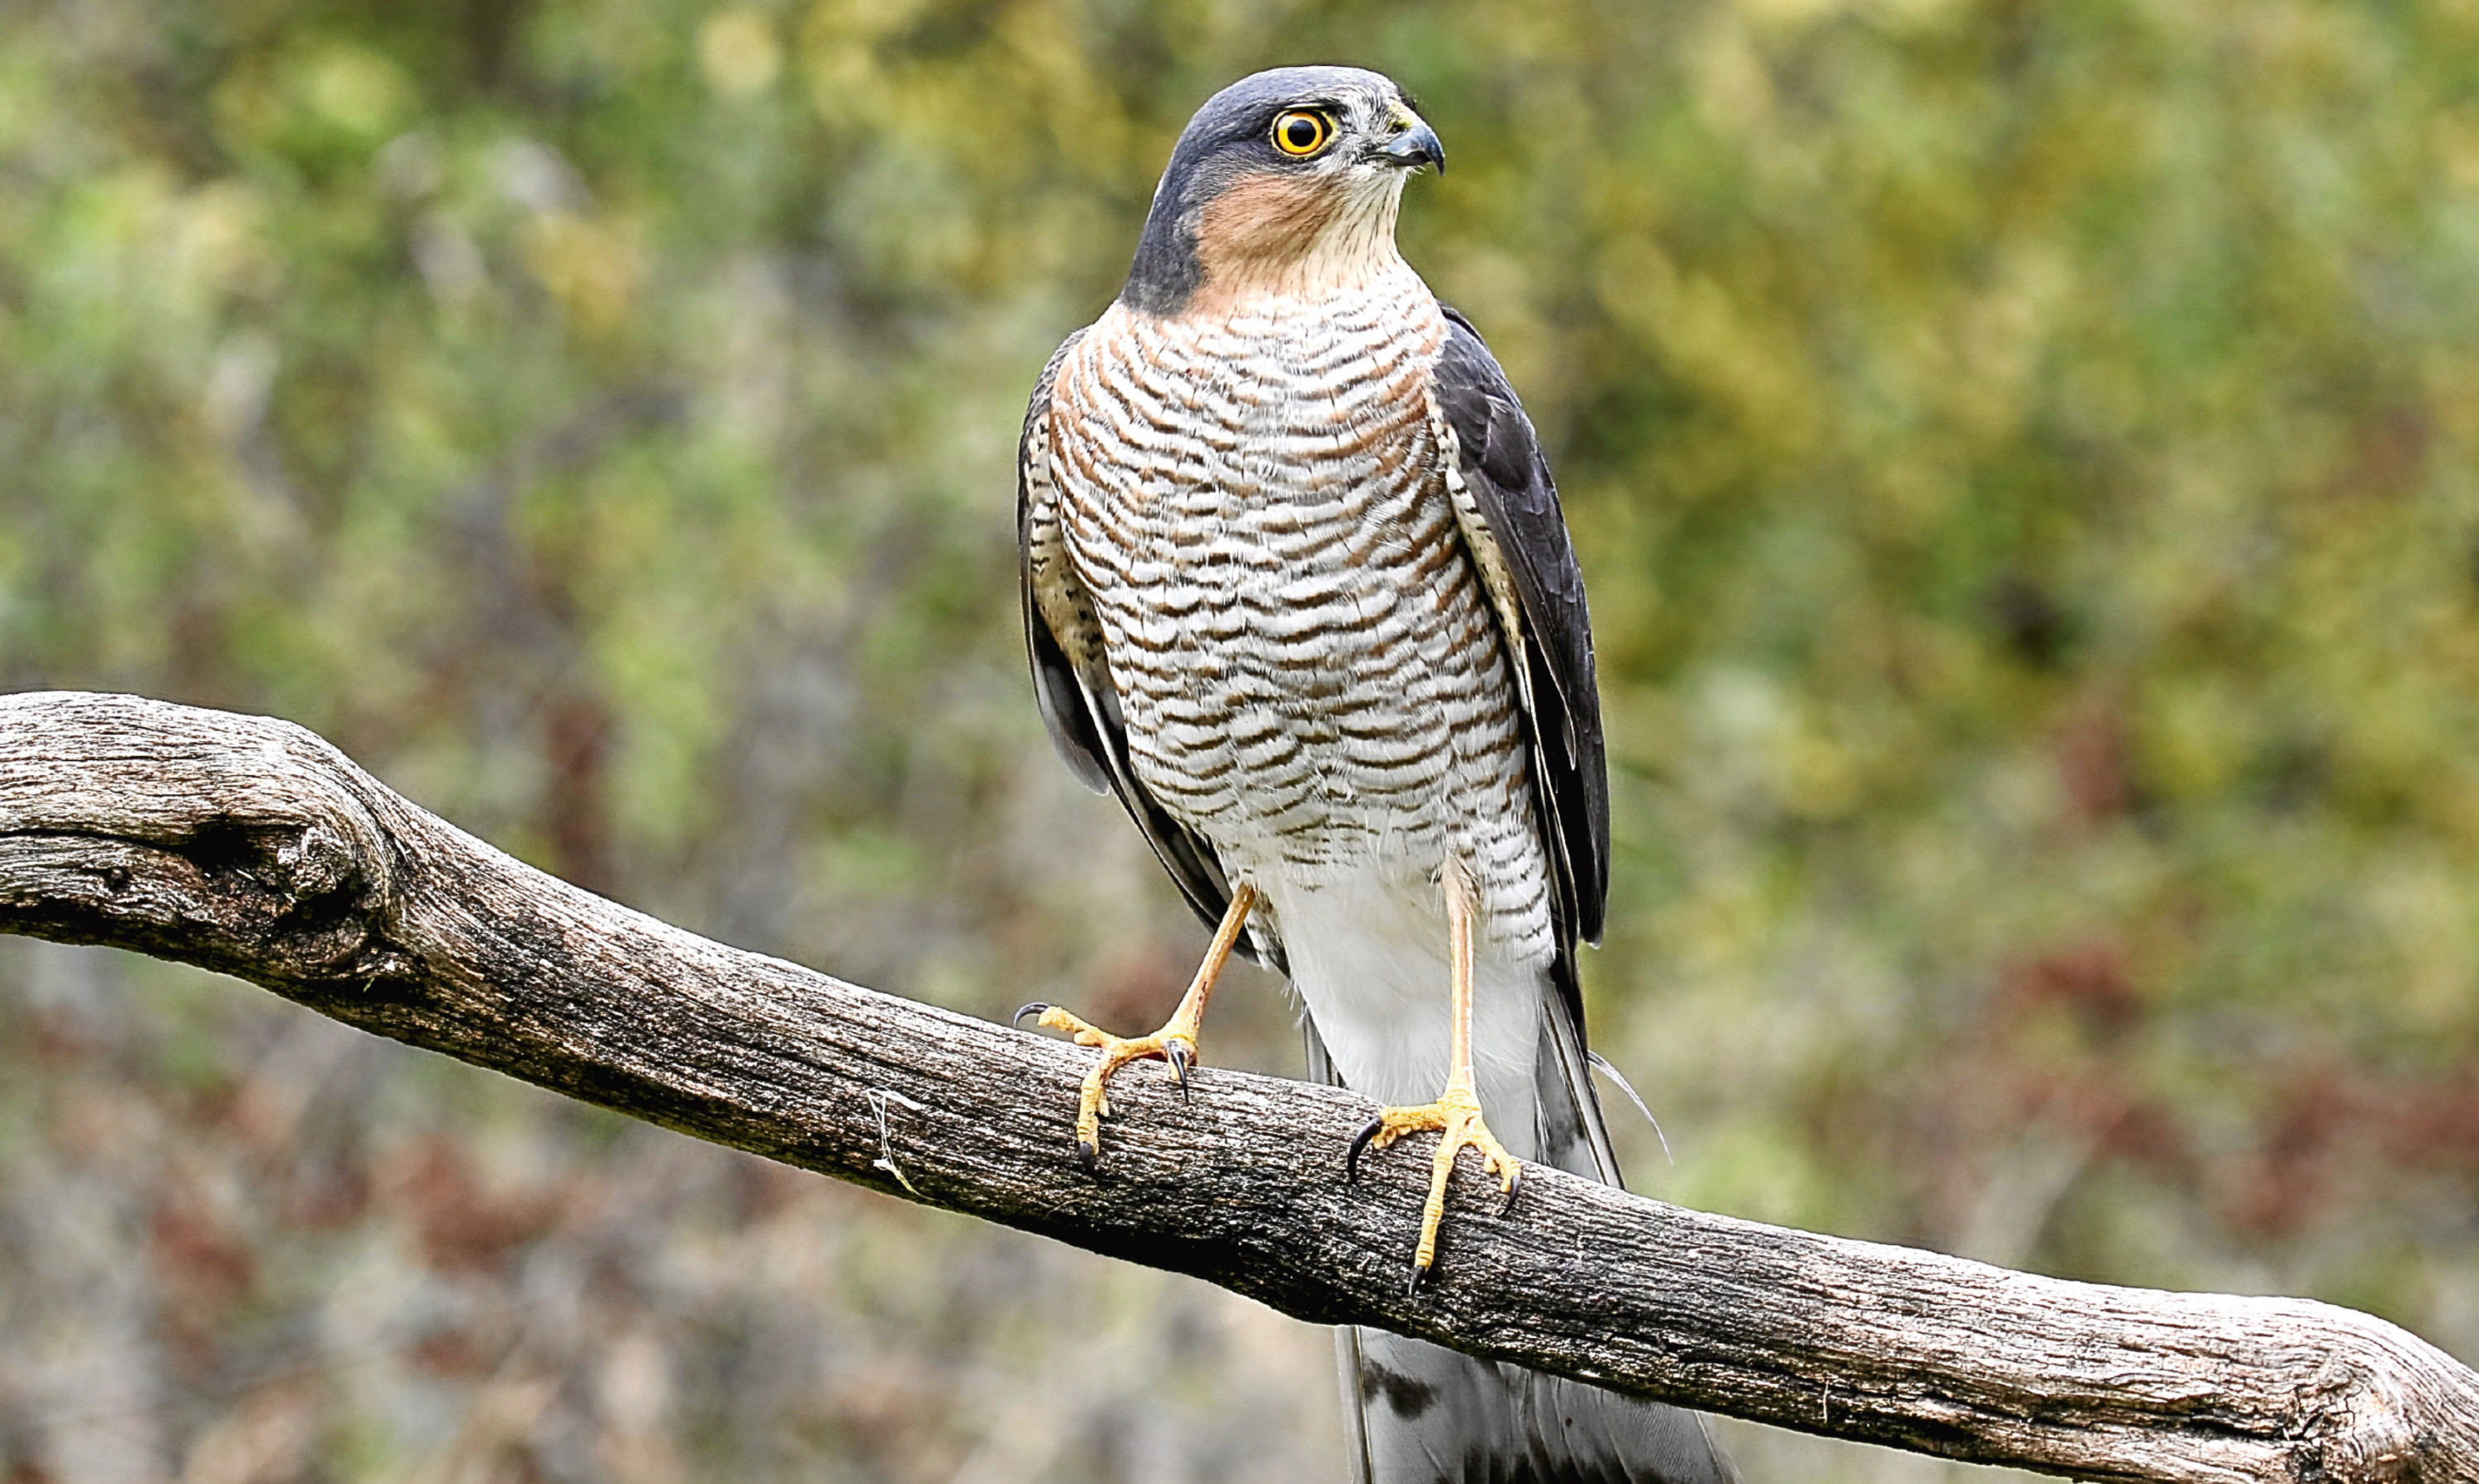 Jim's idea of a special relationship is the way birds like sparrowhawks let their breeding territories overlap with others.